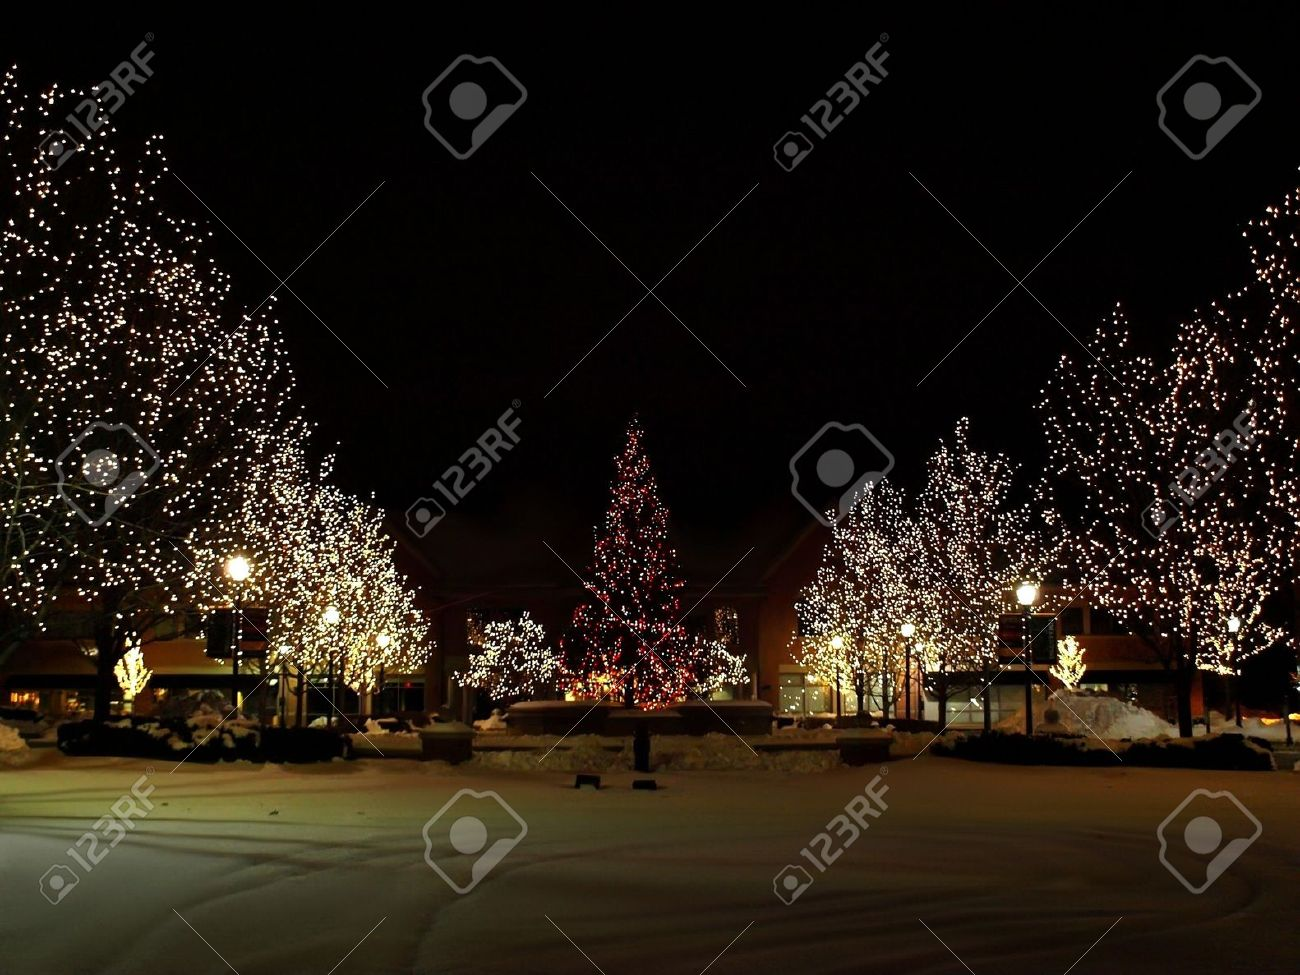 Photo of light trees with christmas lights in the park around a large christmas tree, photo taken at night Stock Photo - 4175864